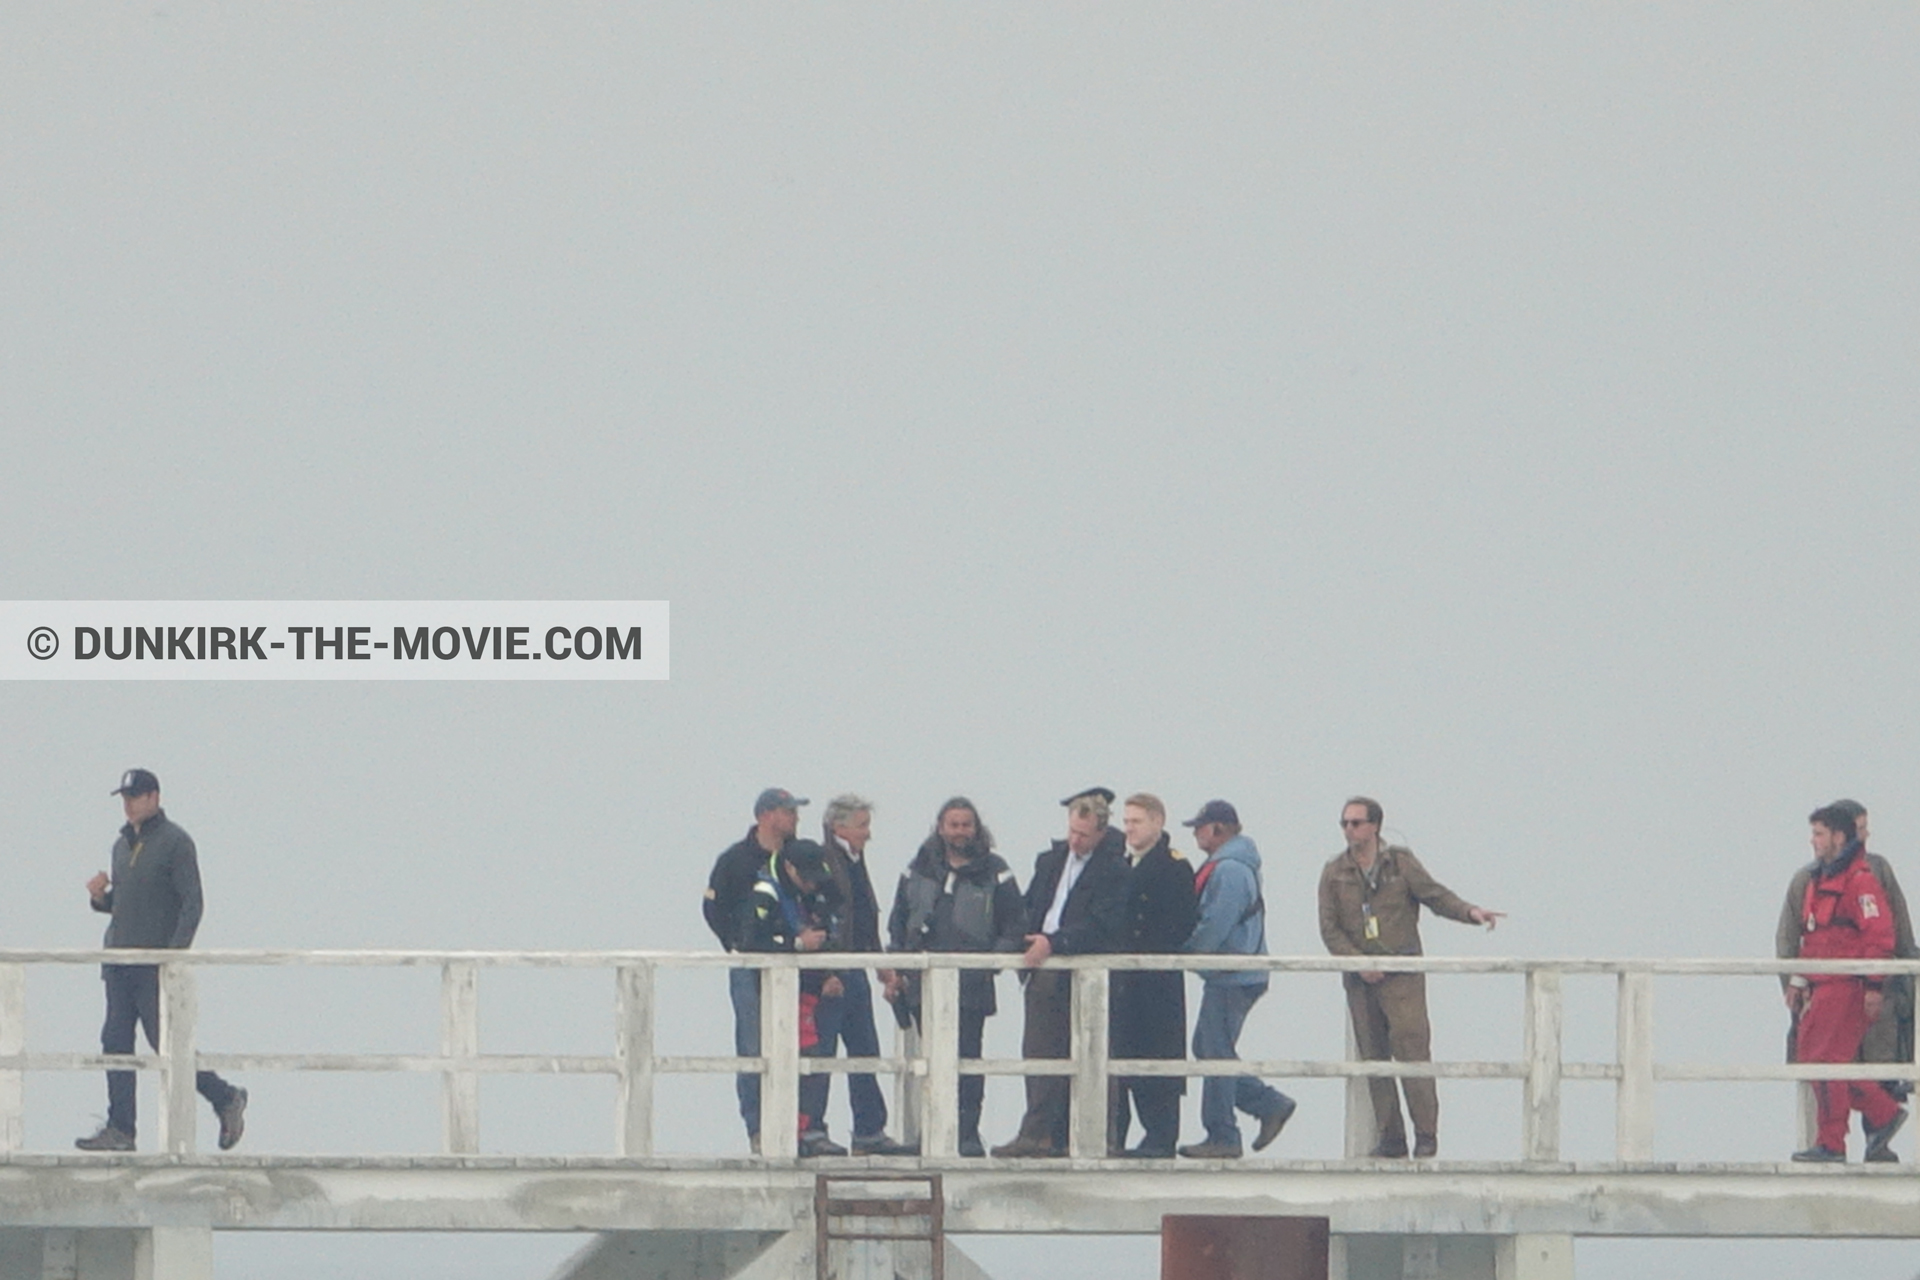 Picture with grey sky, supernumeraries, Hoyte van Hoytema, EST pier, Kenneth Branagh, Christopher Nolan, technical team, Nilo Otero,  from behind the scene of the Dunkirk movie by Nolan